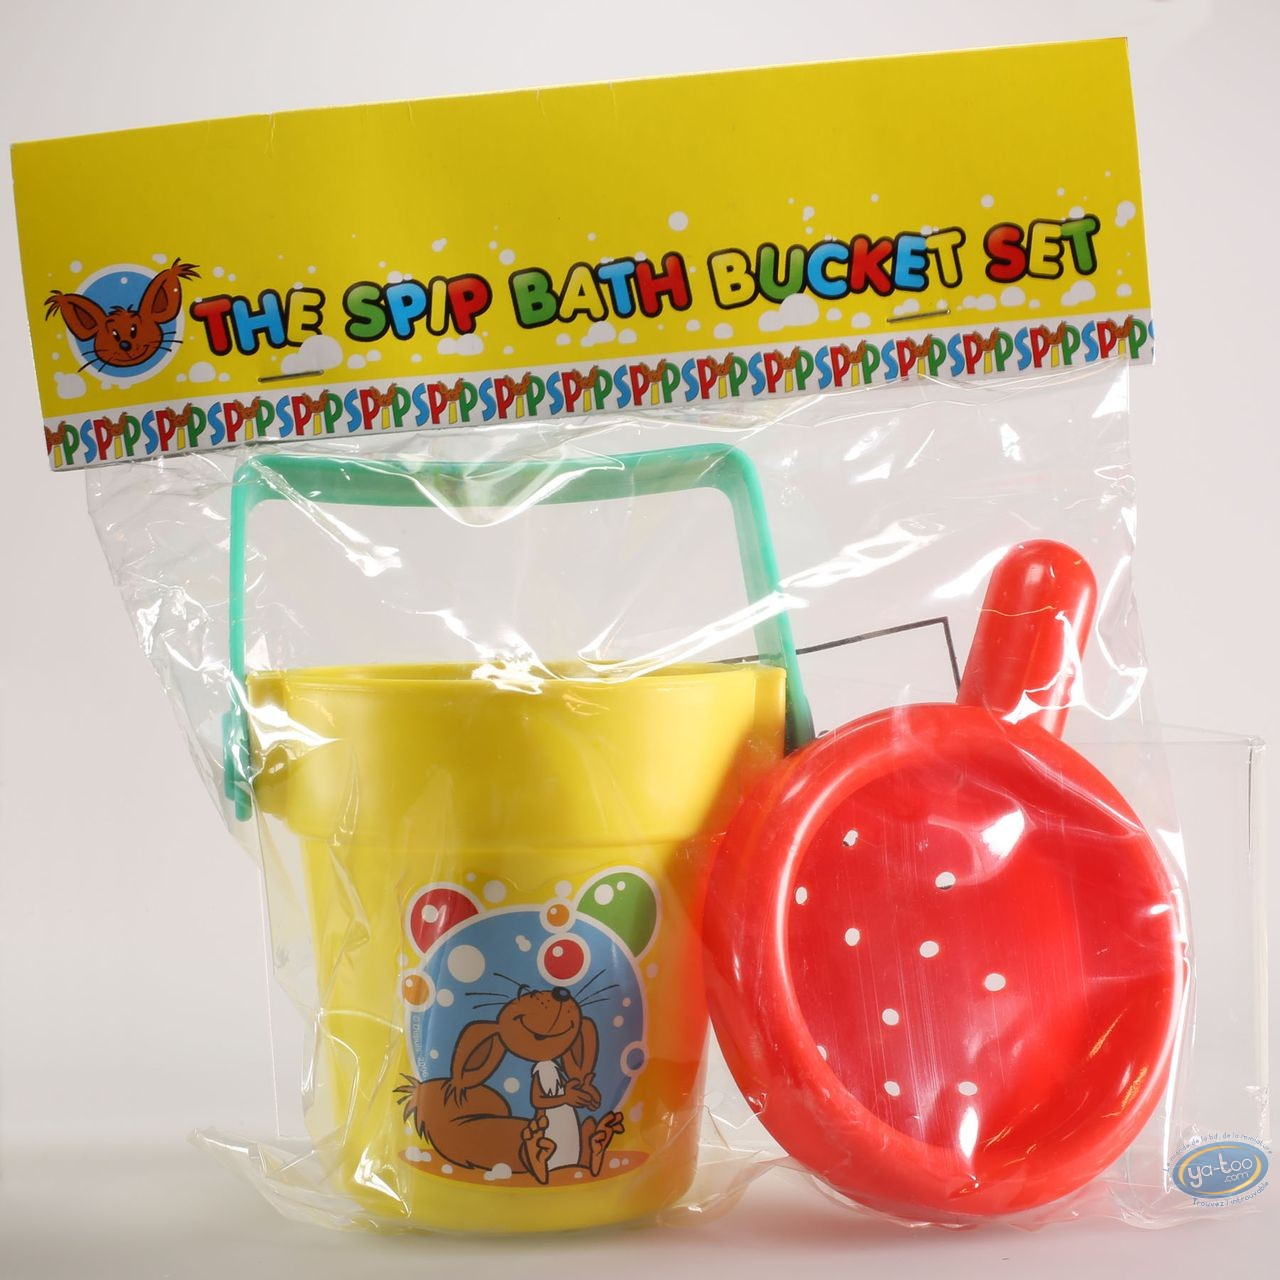 Toy, Spip : The Spip bath bucket set